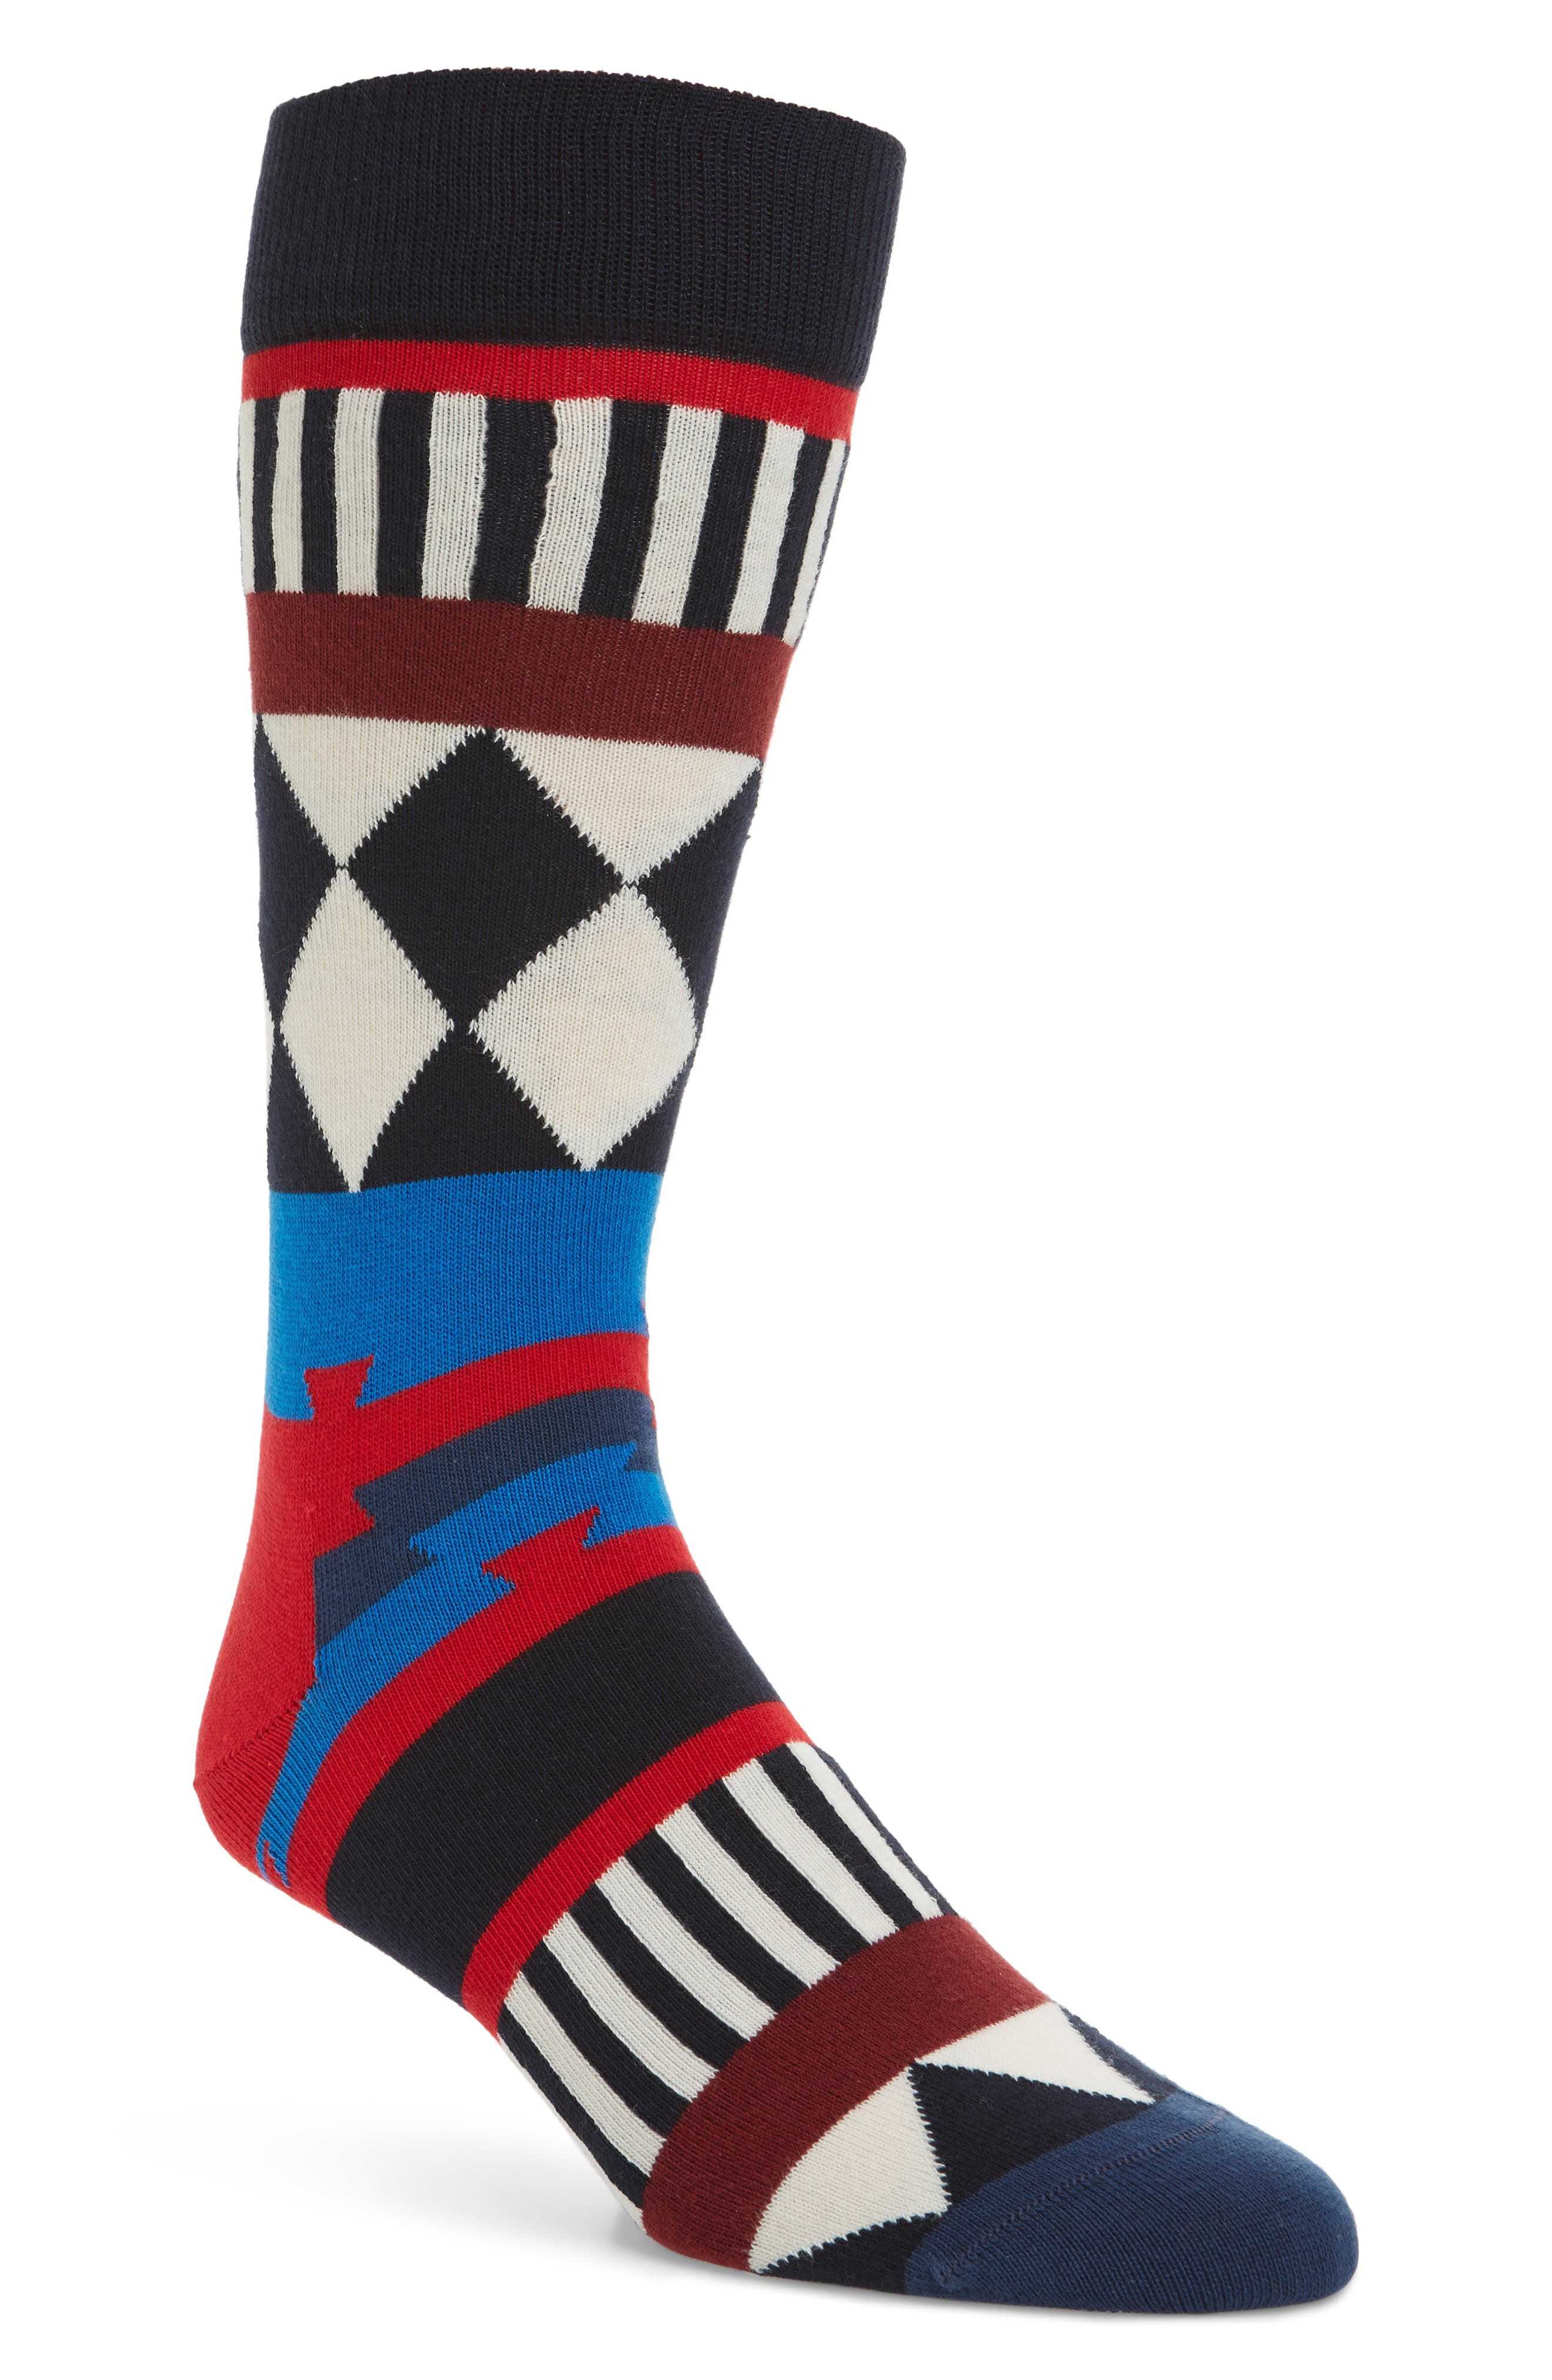 Disco Tribe Socks,                         Main,                         color, Red Multi